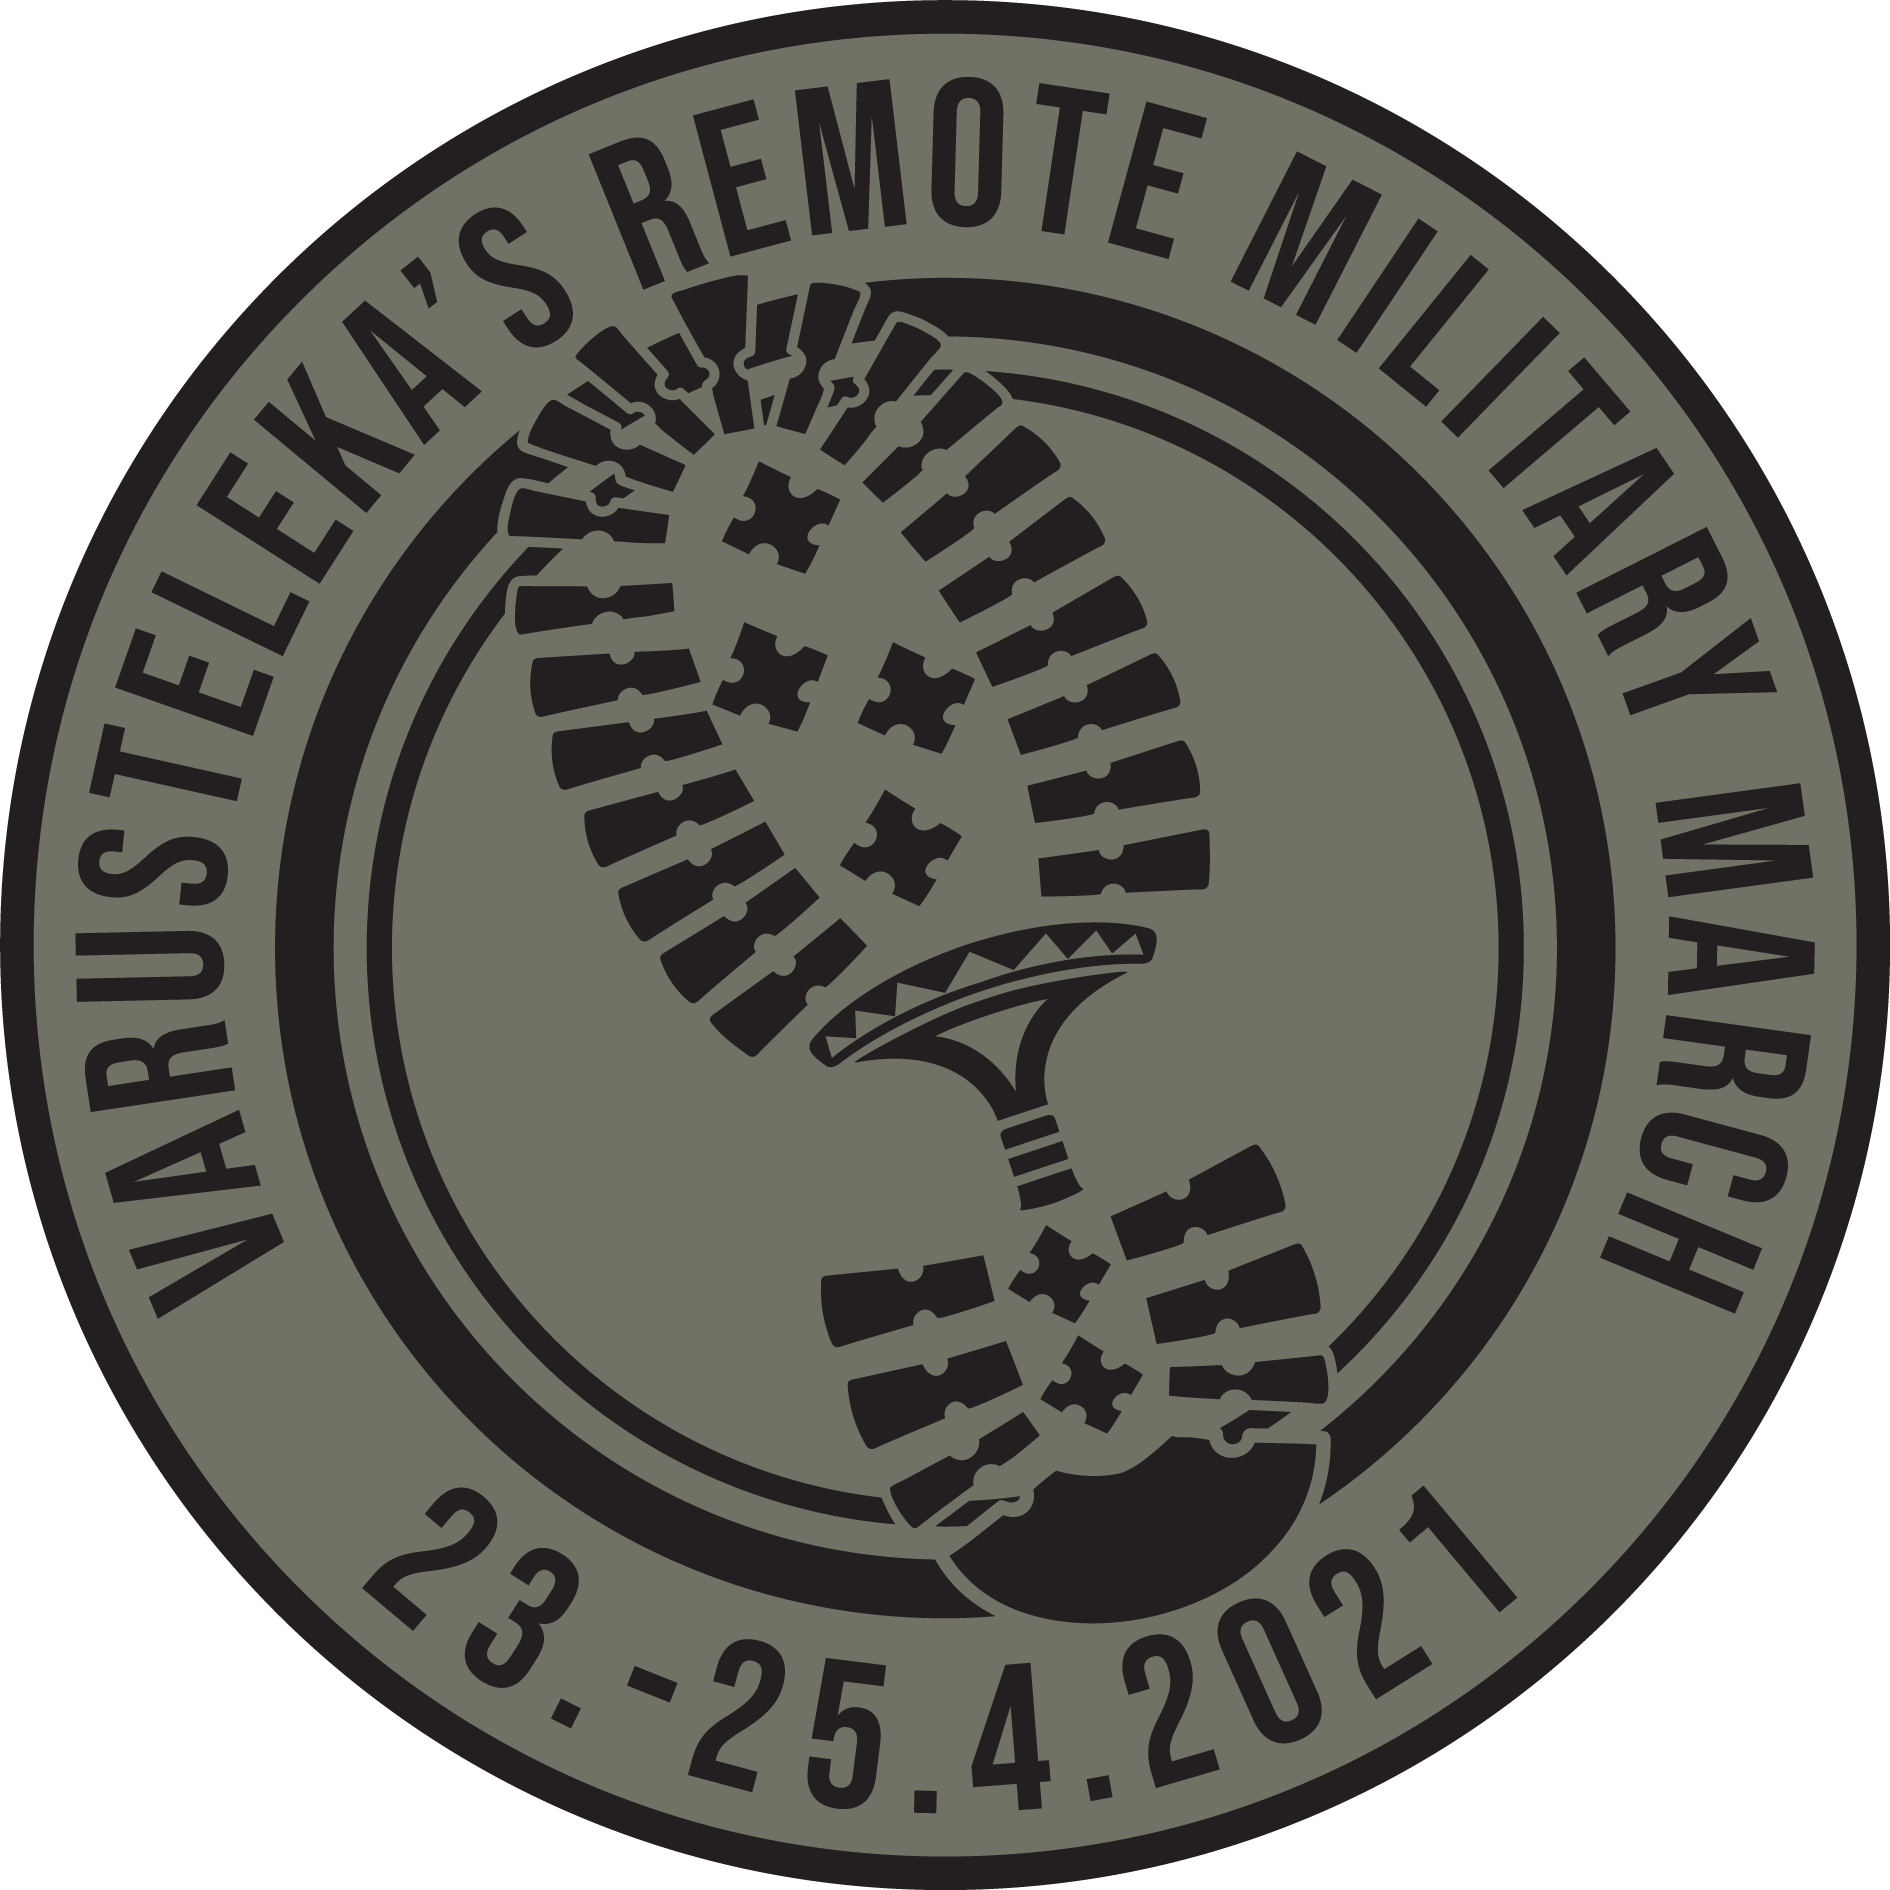 Varusteleka's Remote Military March patch